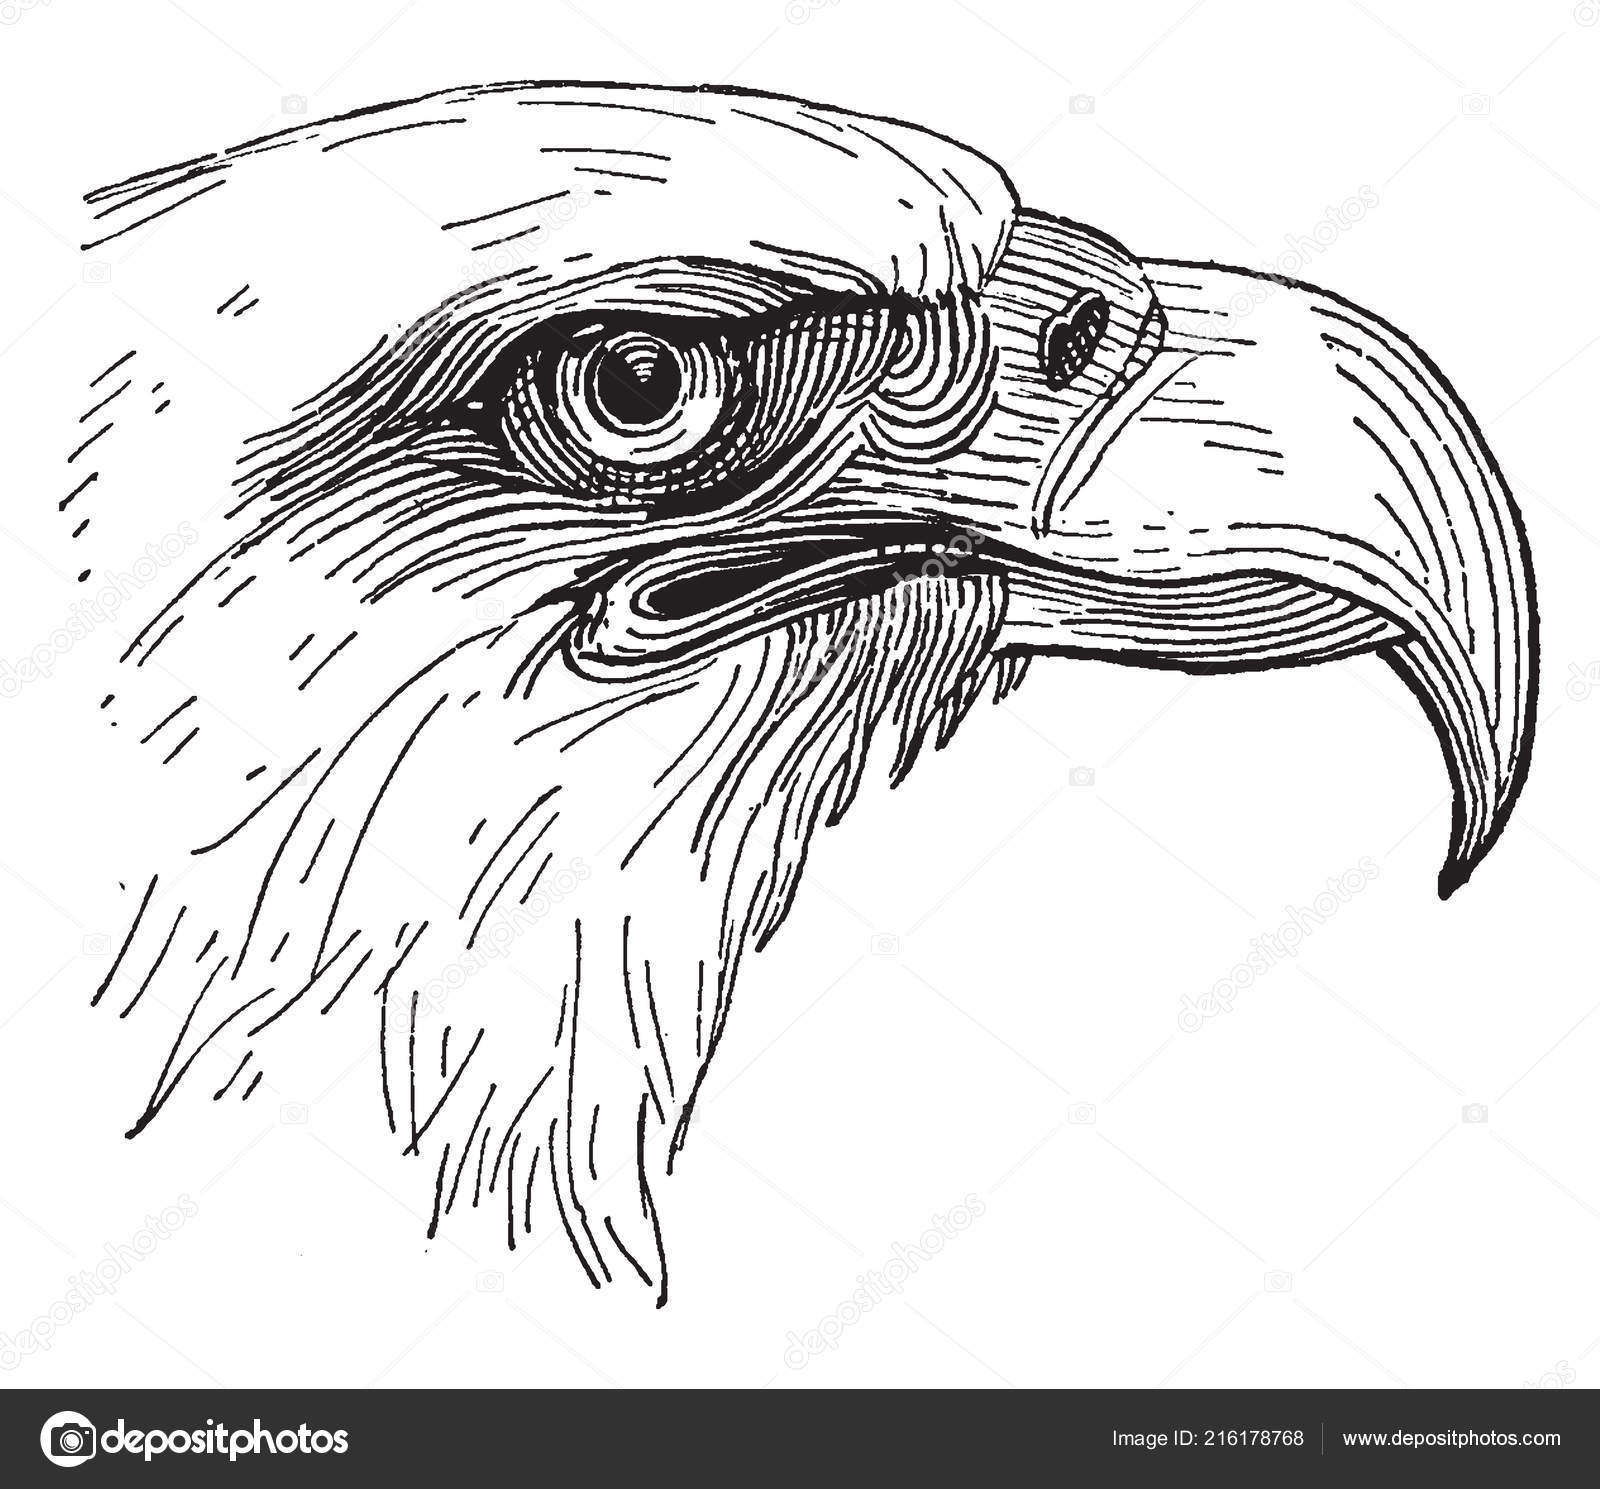 Brilliant Diagram Represents Bald Eagle Head Vintage Line Drawing Engraving Wiring Digital Resources Remcakbiperorg